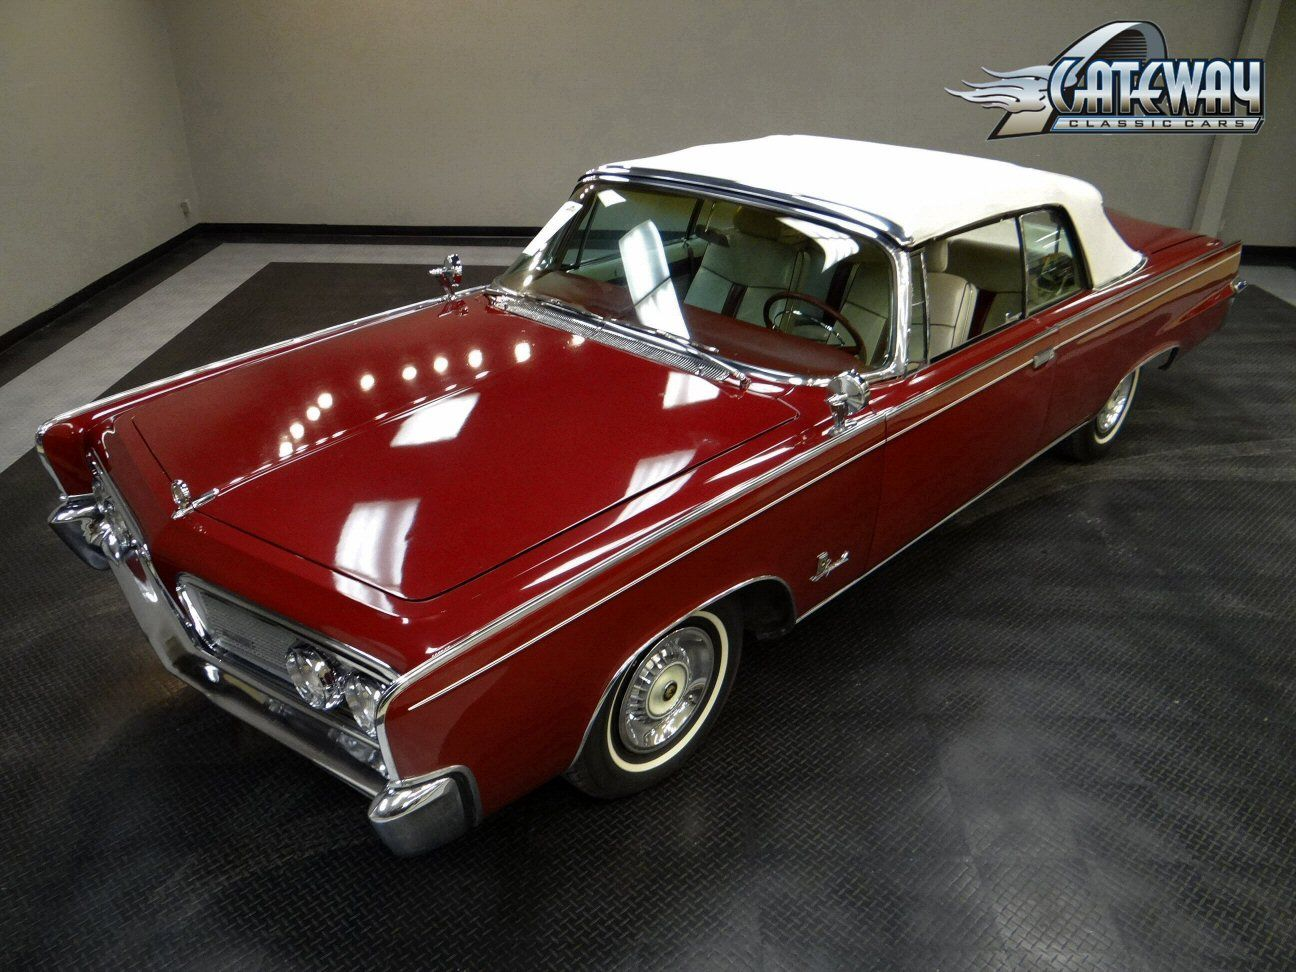 1964 Chrysler Imperial Convertible for Sale - Gateway Classic Cars ...